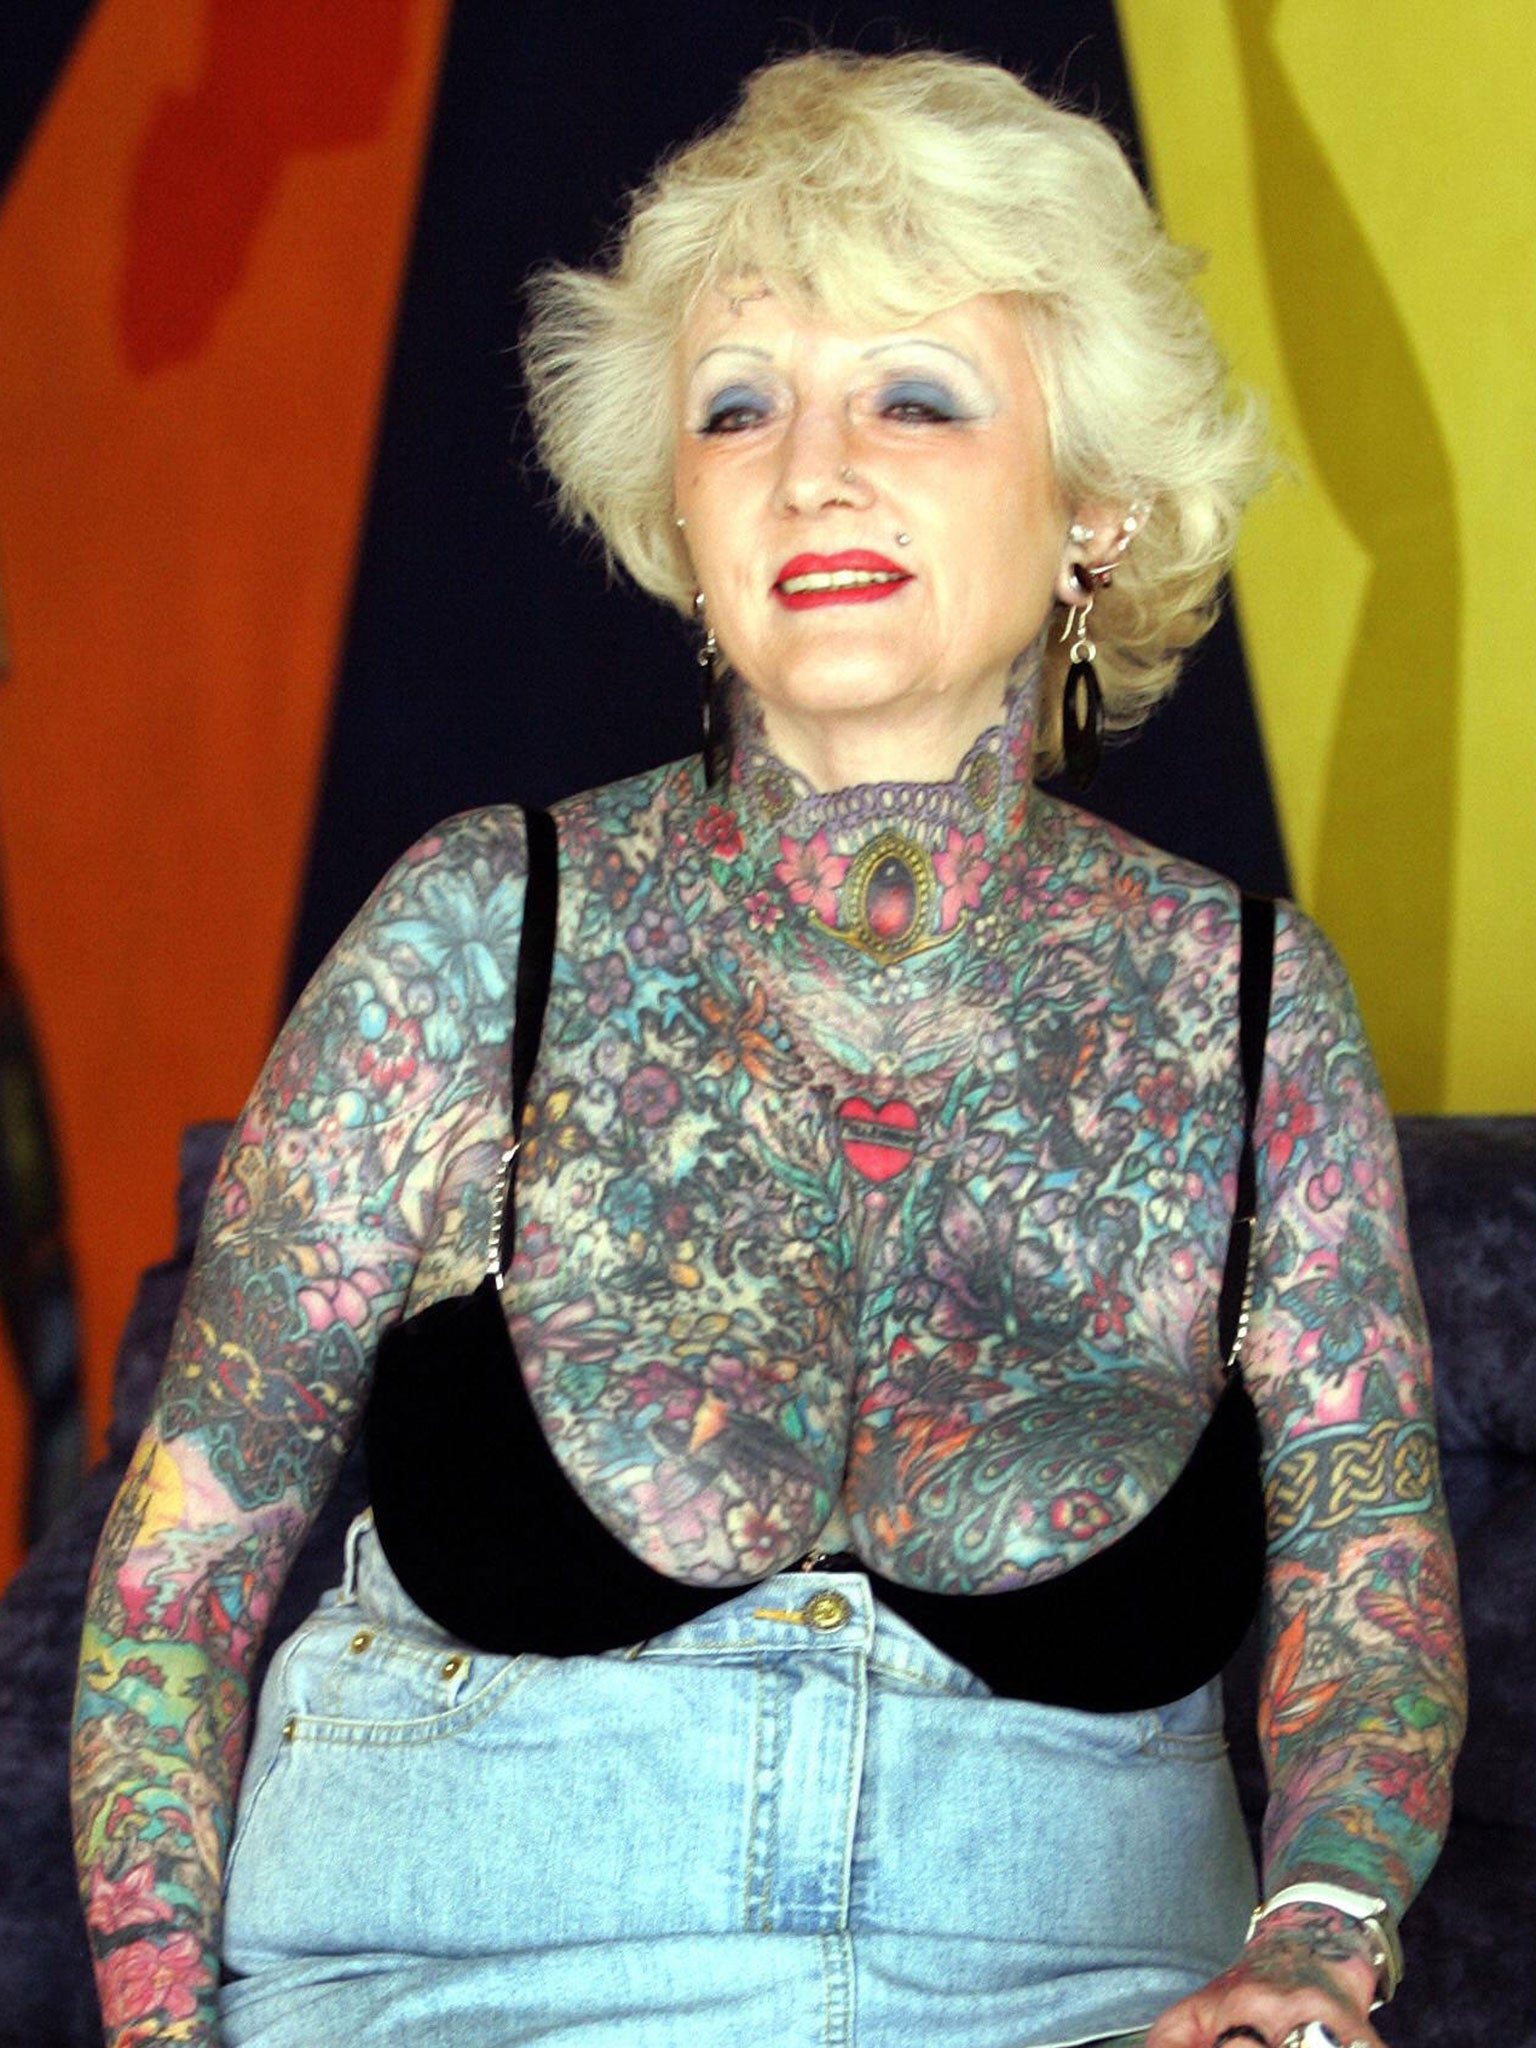 242590750 Isobel Varley: World's most tattooed female senior citizen dies aged ...